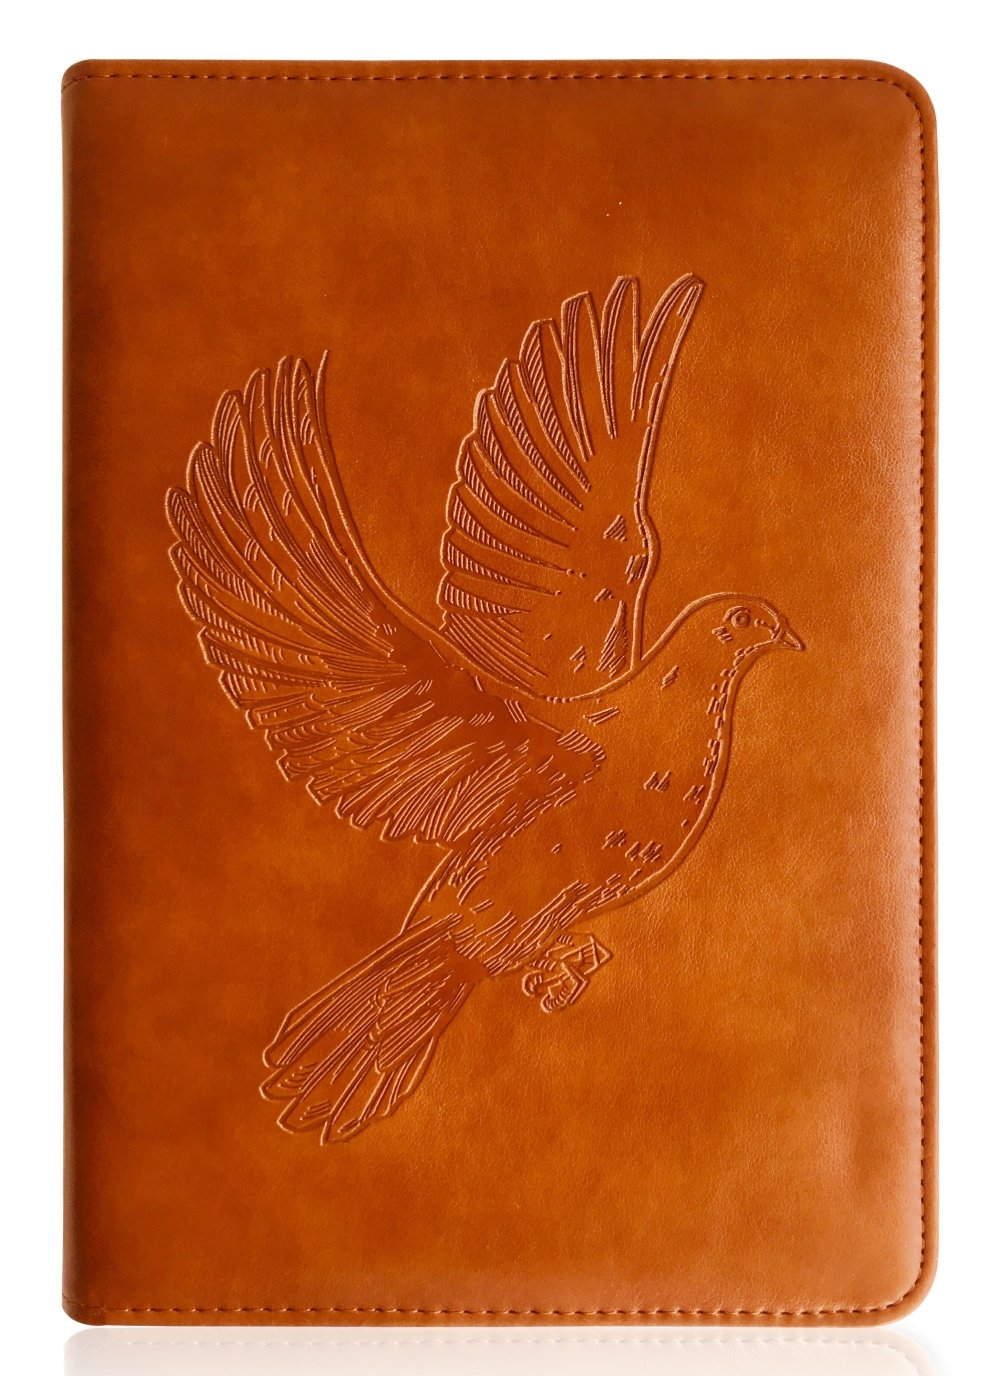 Dove Writing Journal by SohoSpark, Refillable Faux Leather, Lined Personal Diary for Travel, 6x8.75 Notebook for Writers. Fountain Pen Safe with Lay-Flat Binding.